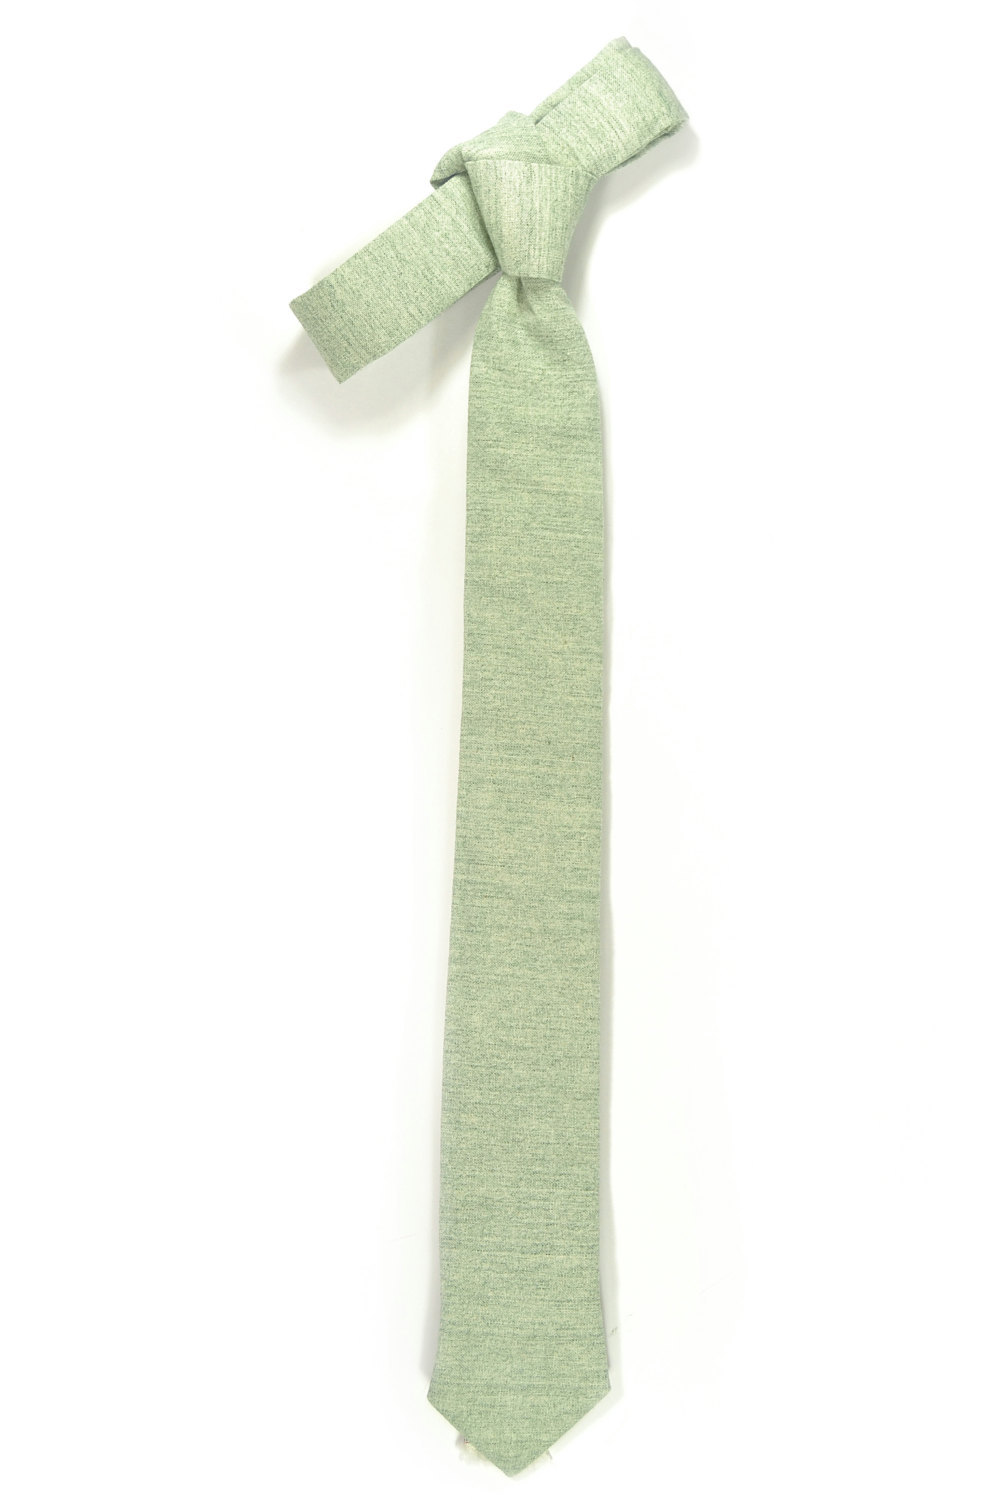 Wedding Mens Tie Skinny Necktie blush green- Laid-Back necktie- Green Japanese f image 4